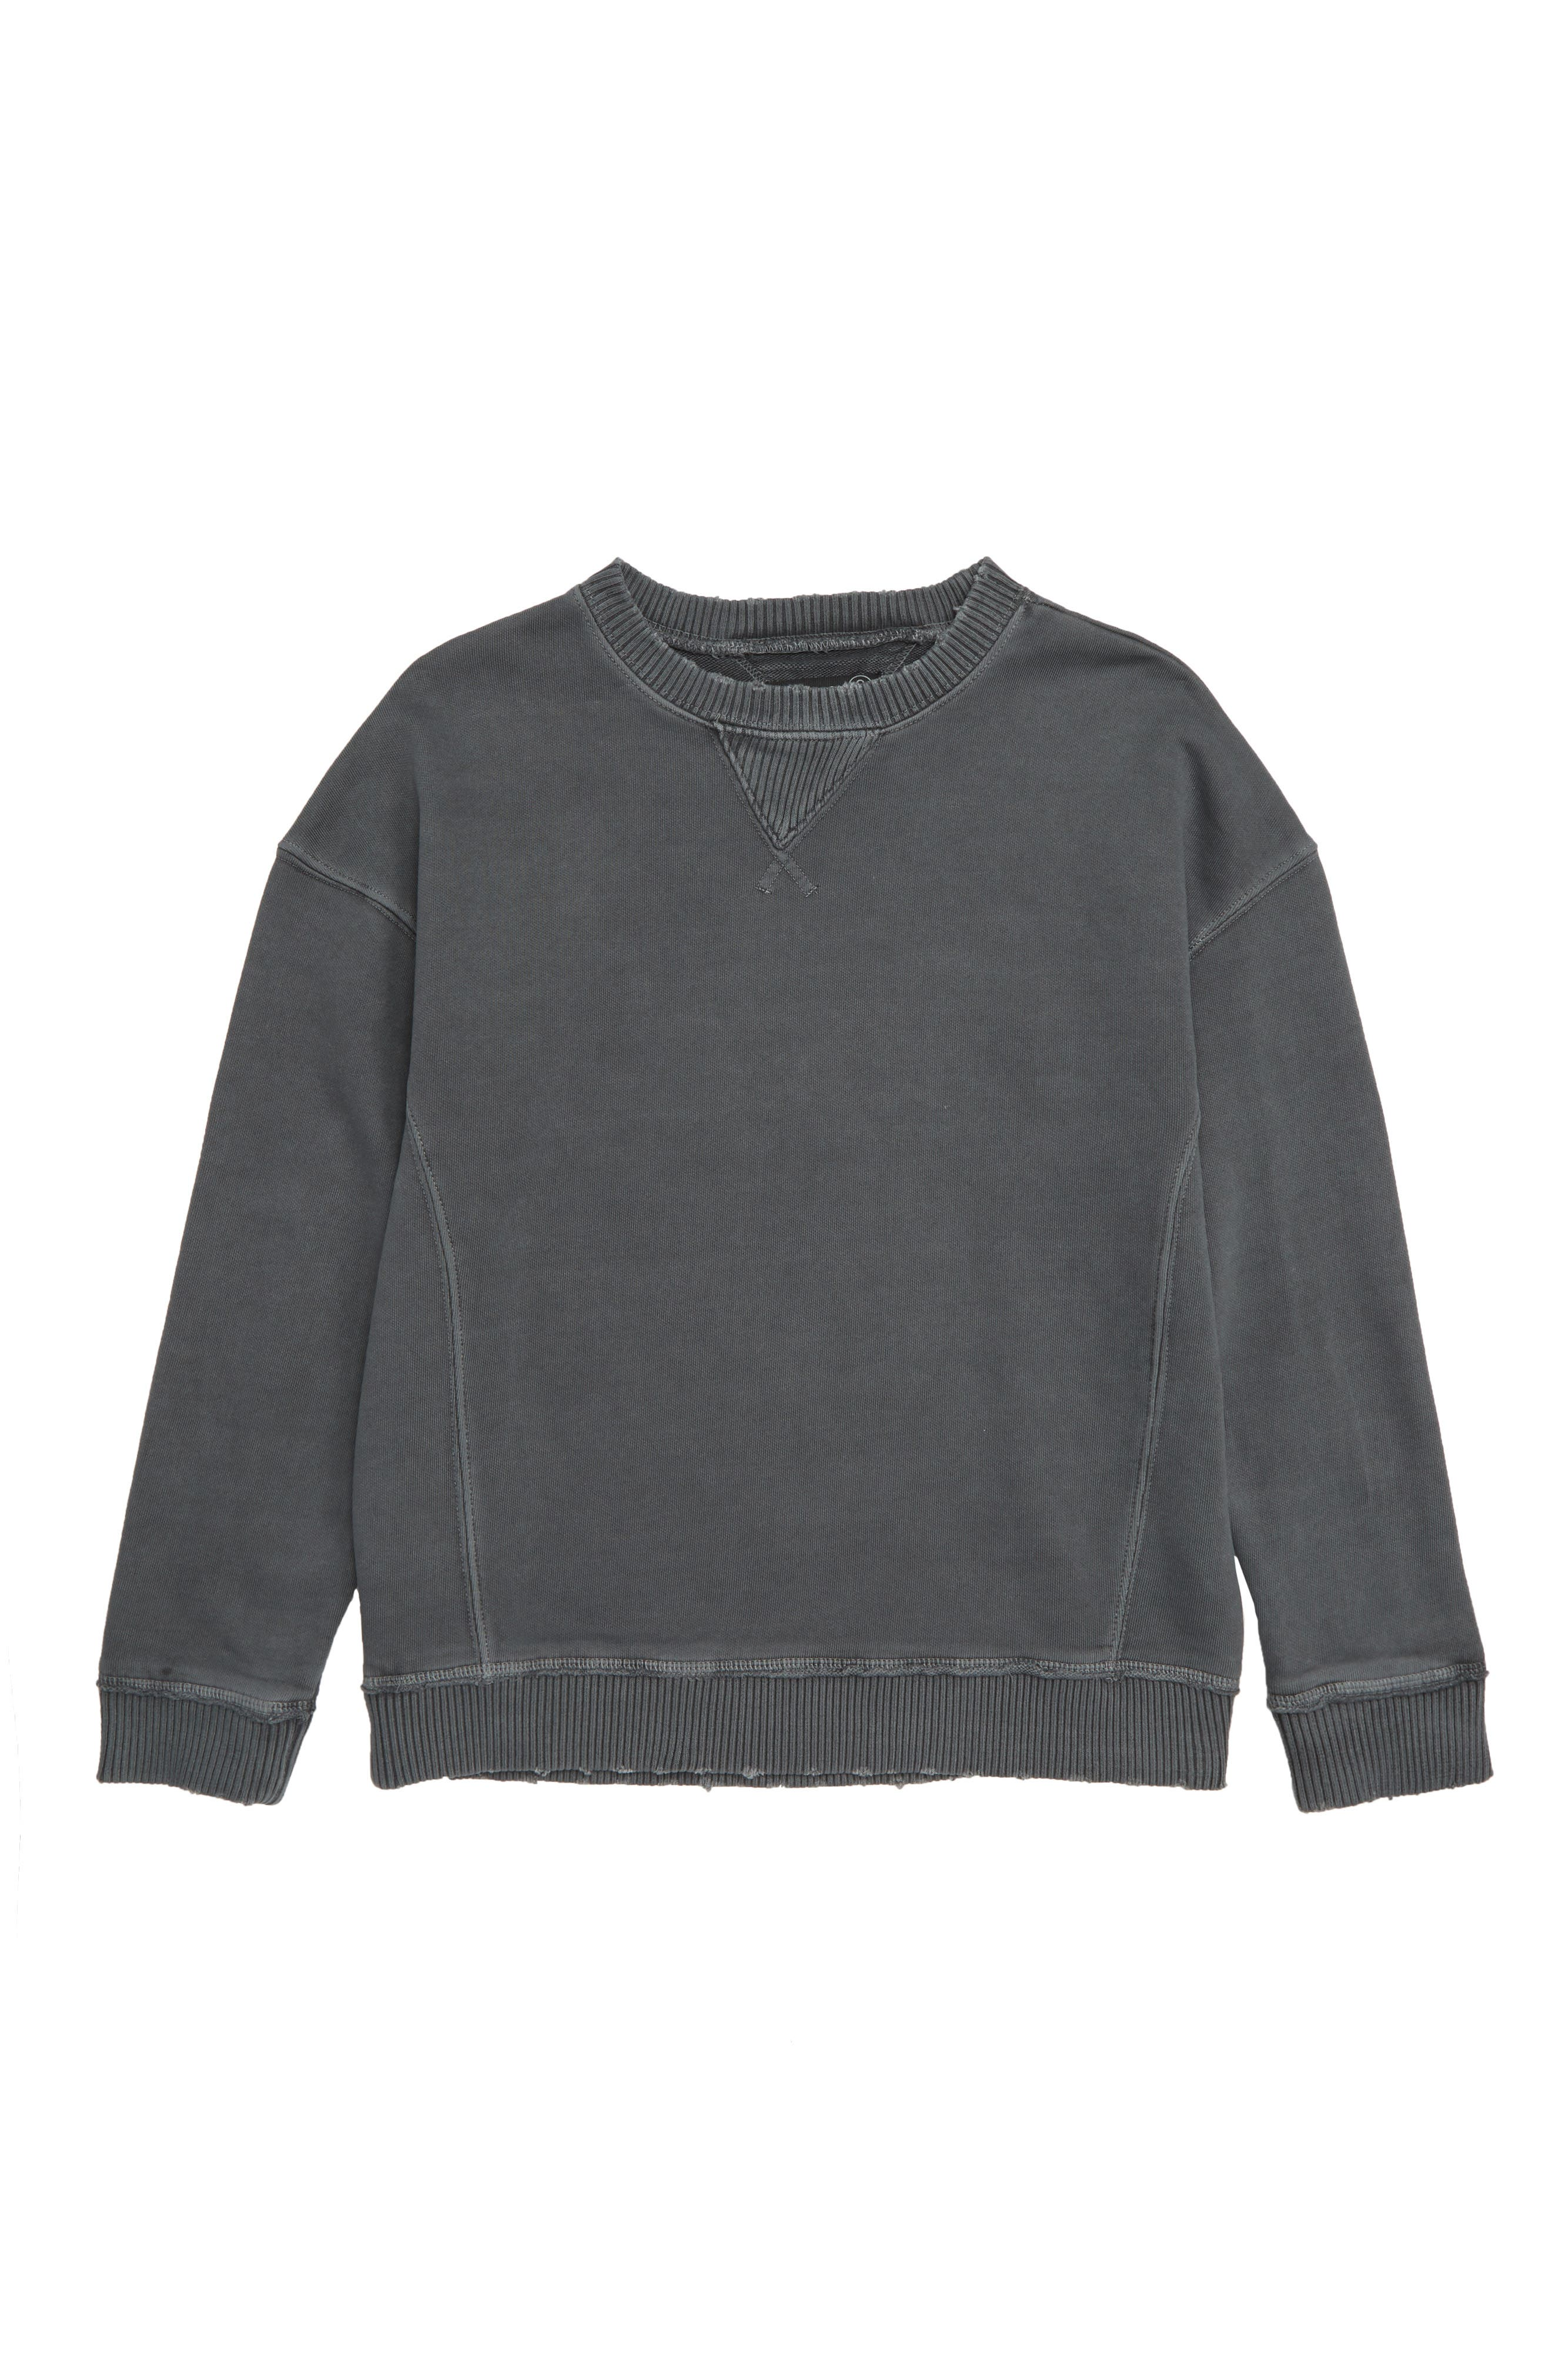 Worn-In Sweatshirt,                             Main thumbnail 1, color,                             BLUE CHINOISE